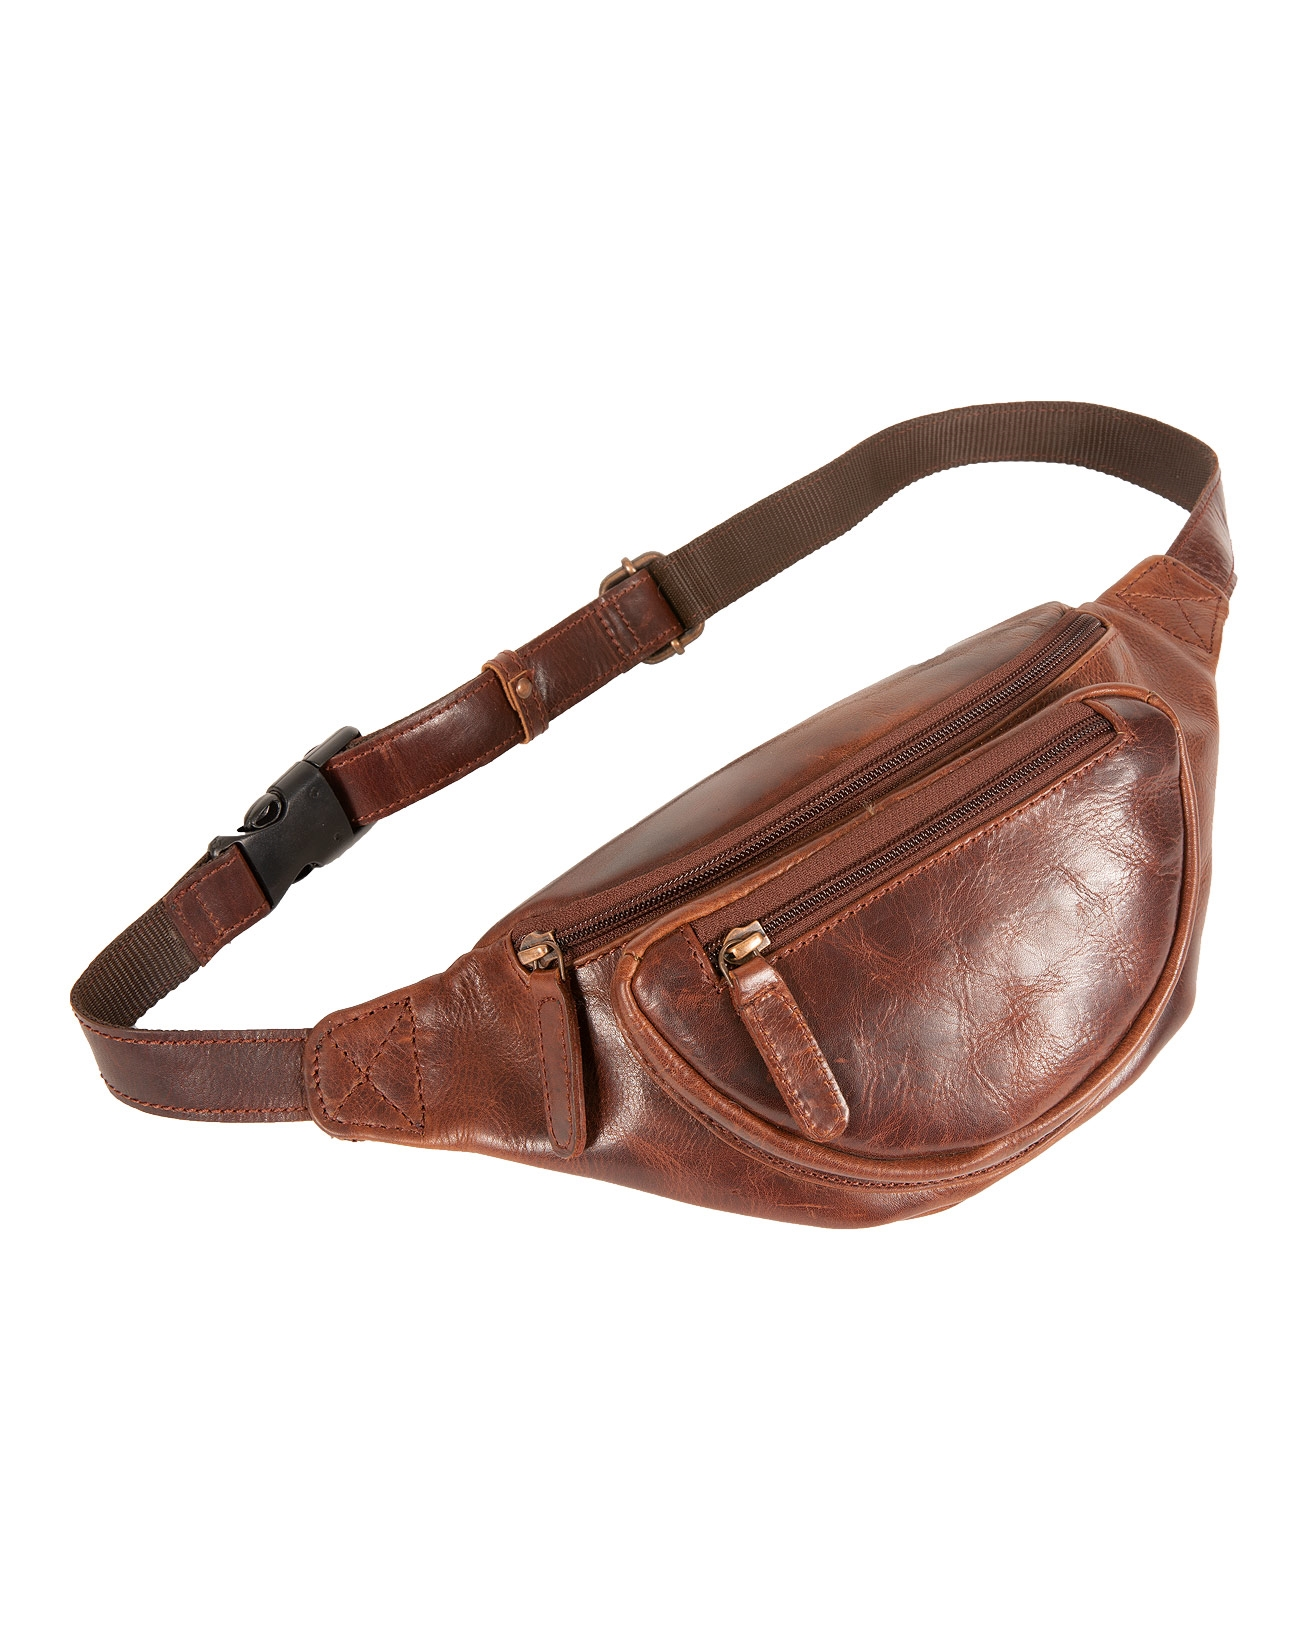 7537-burnished beltbag-chestnut-side.jpg